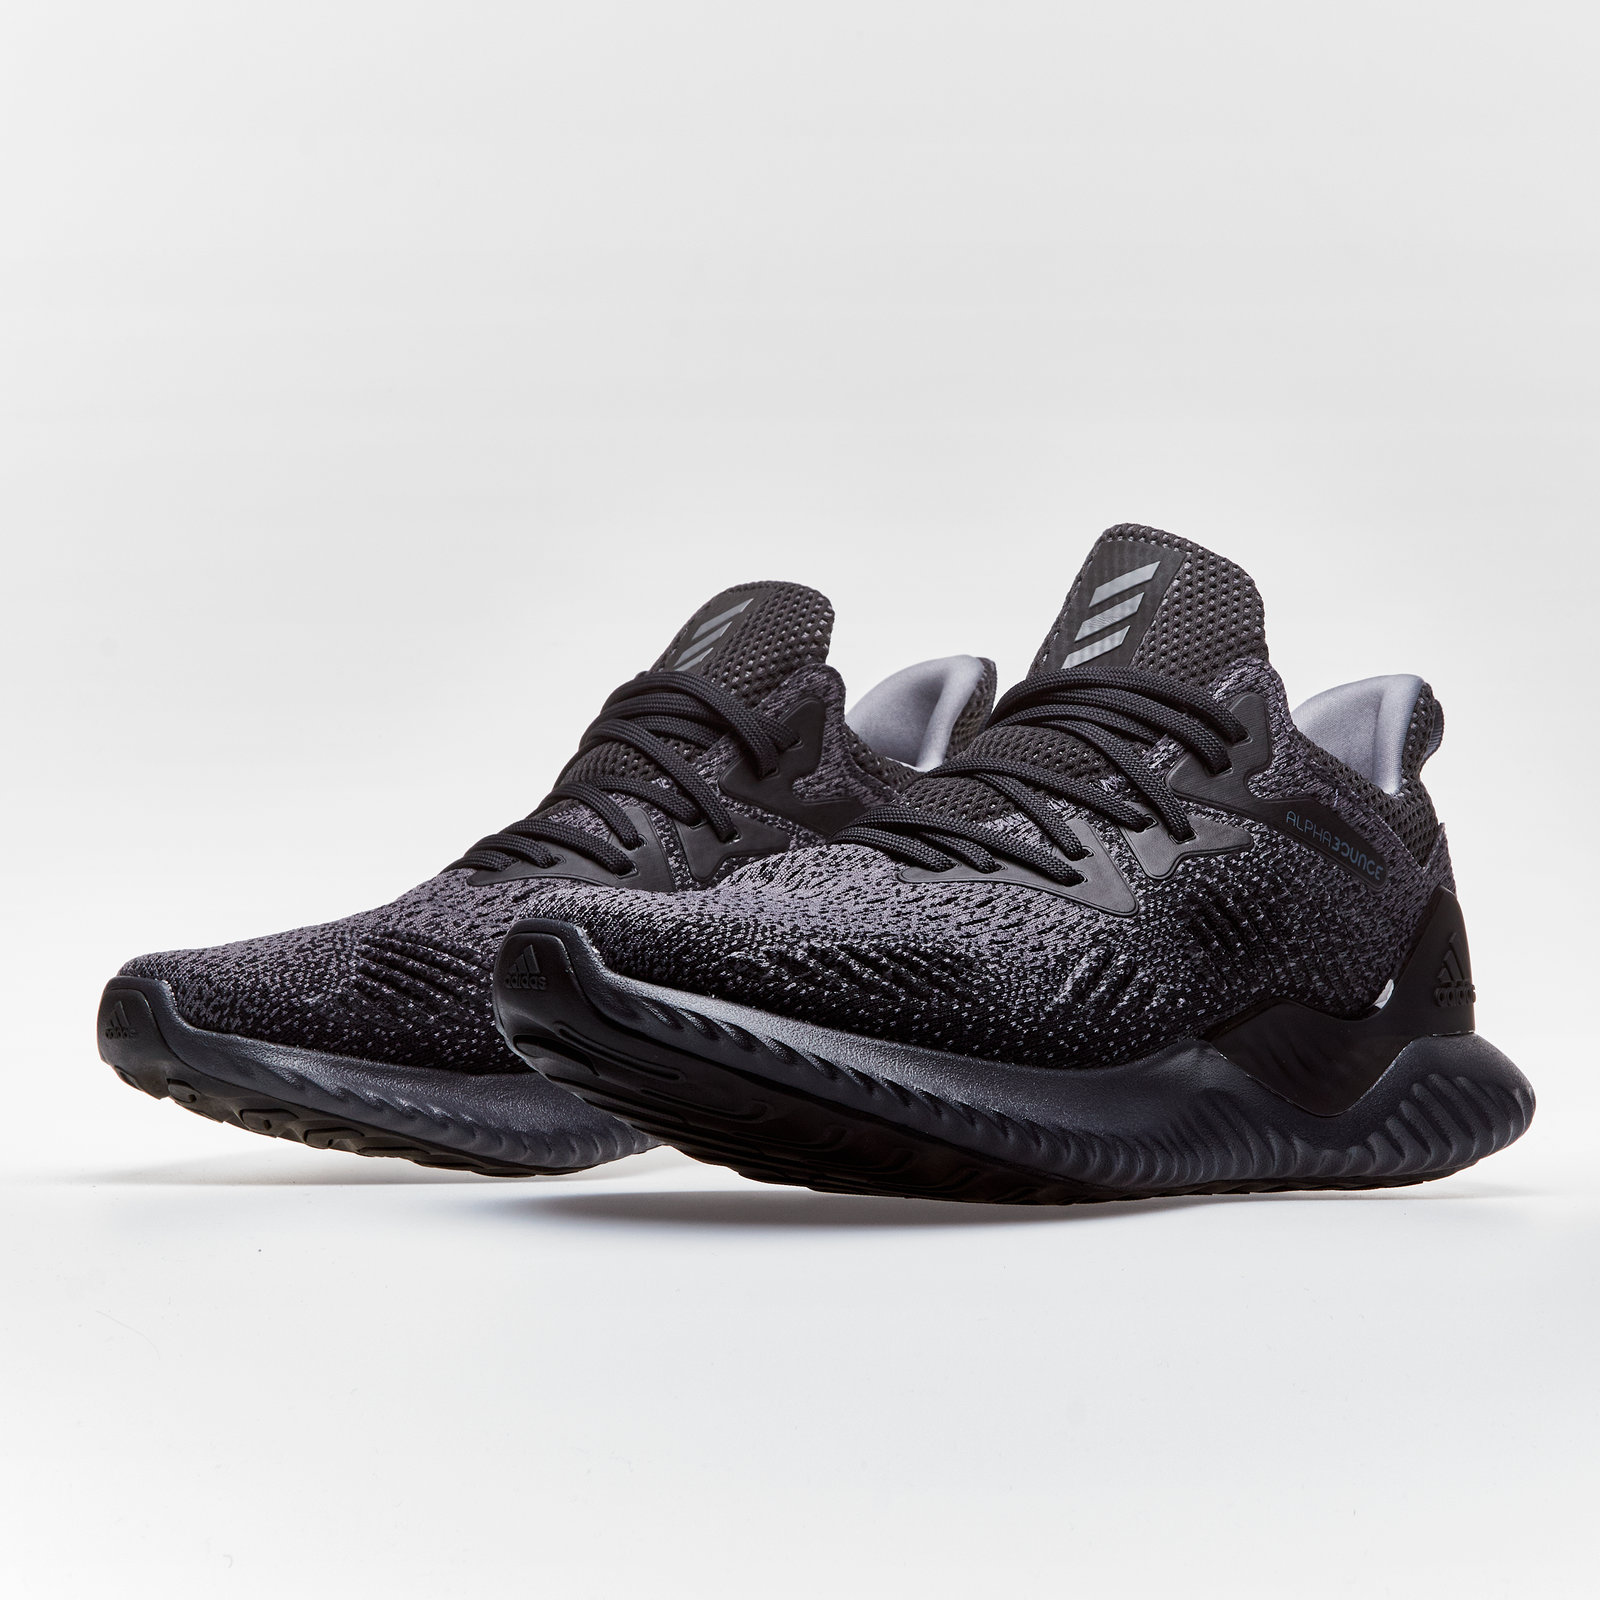 buy online 2ff9e 44e59 Details about adidas Mens AlphaBounce Beyond Running Shoes Sports Trainers Black  Footwear